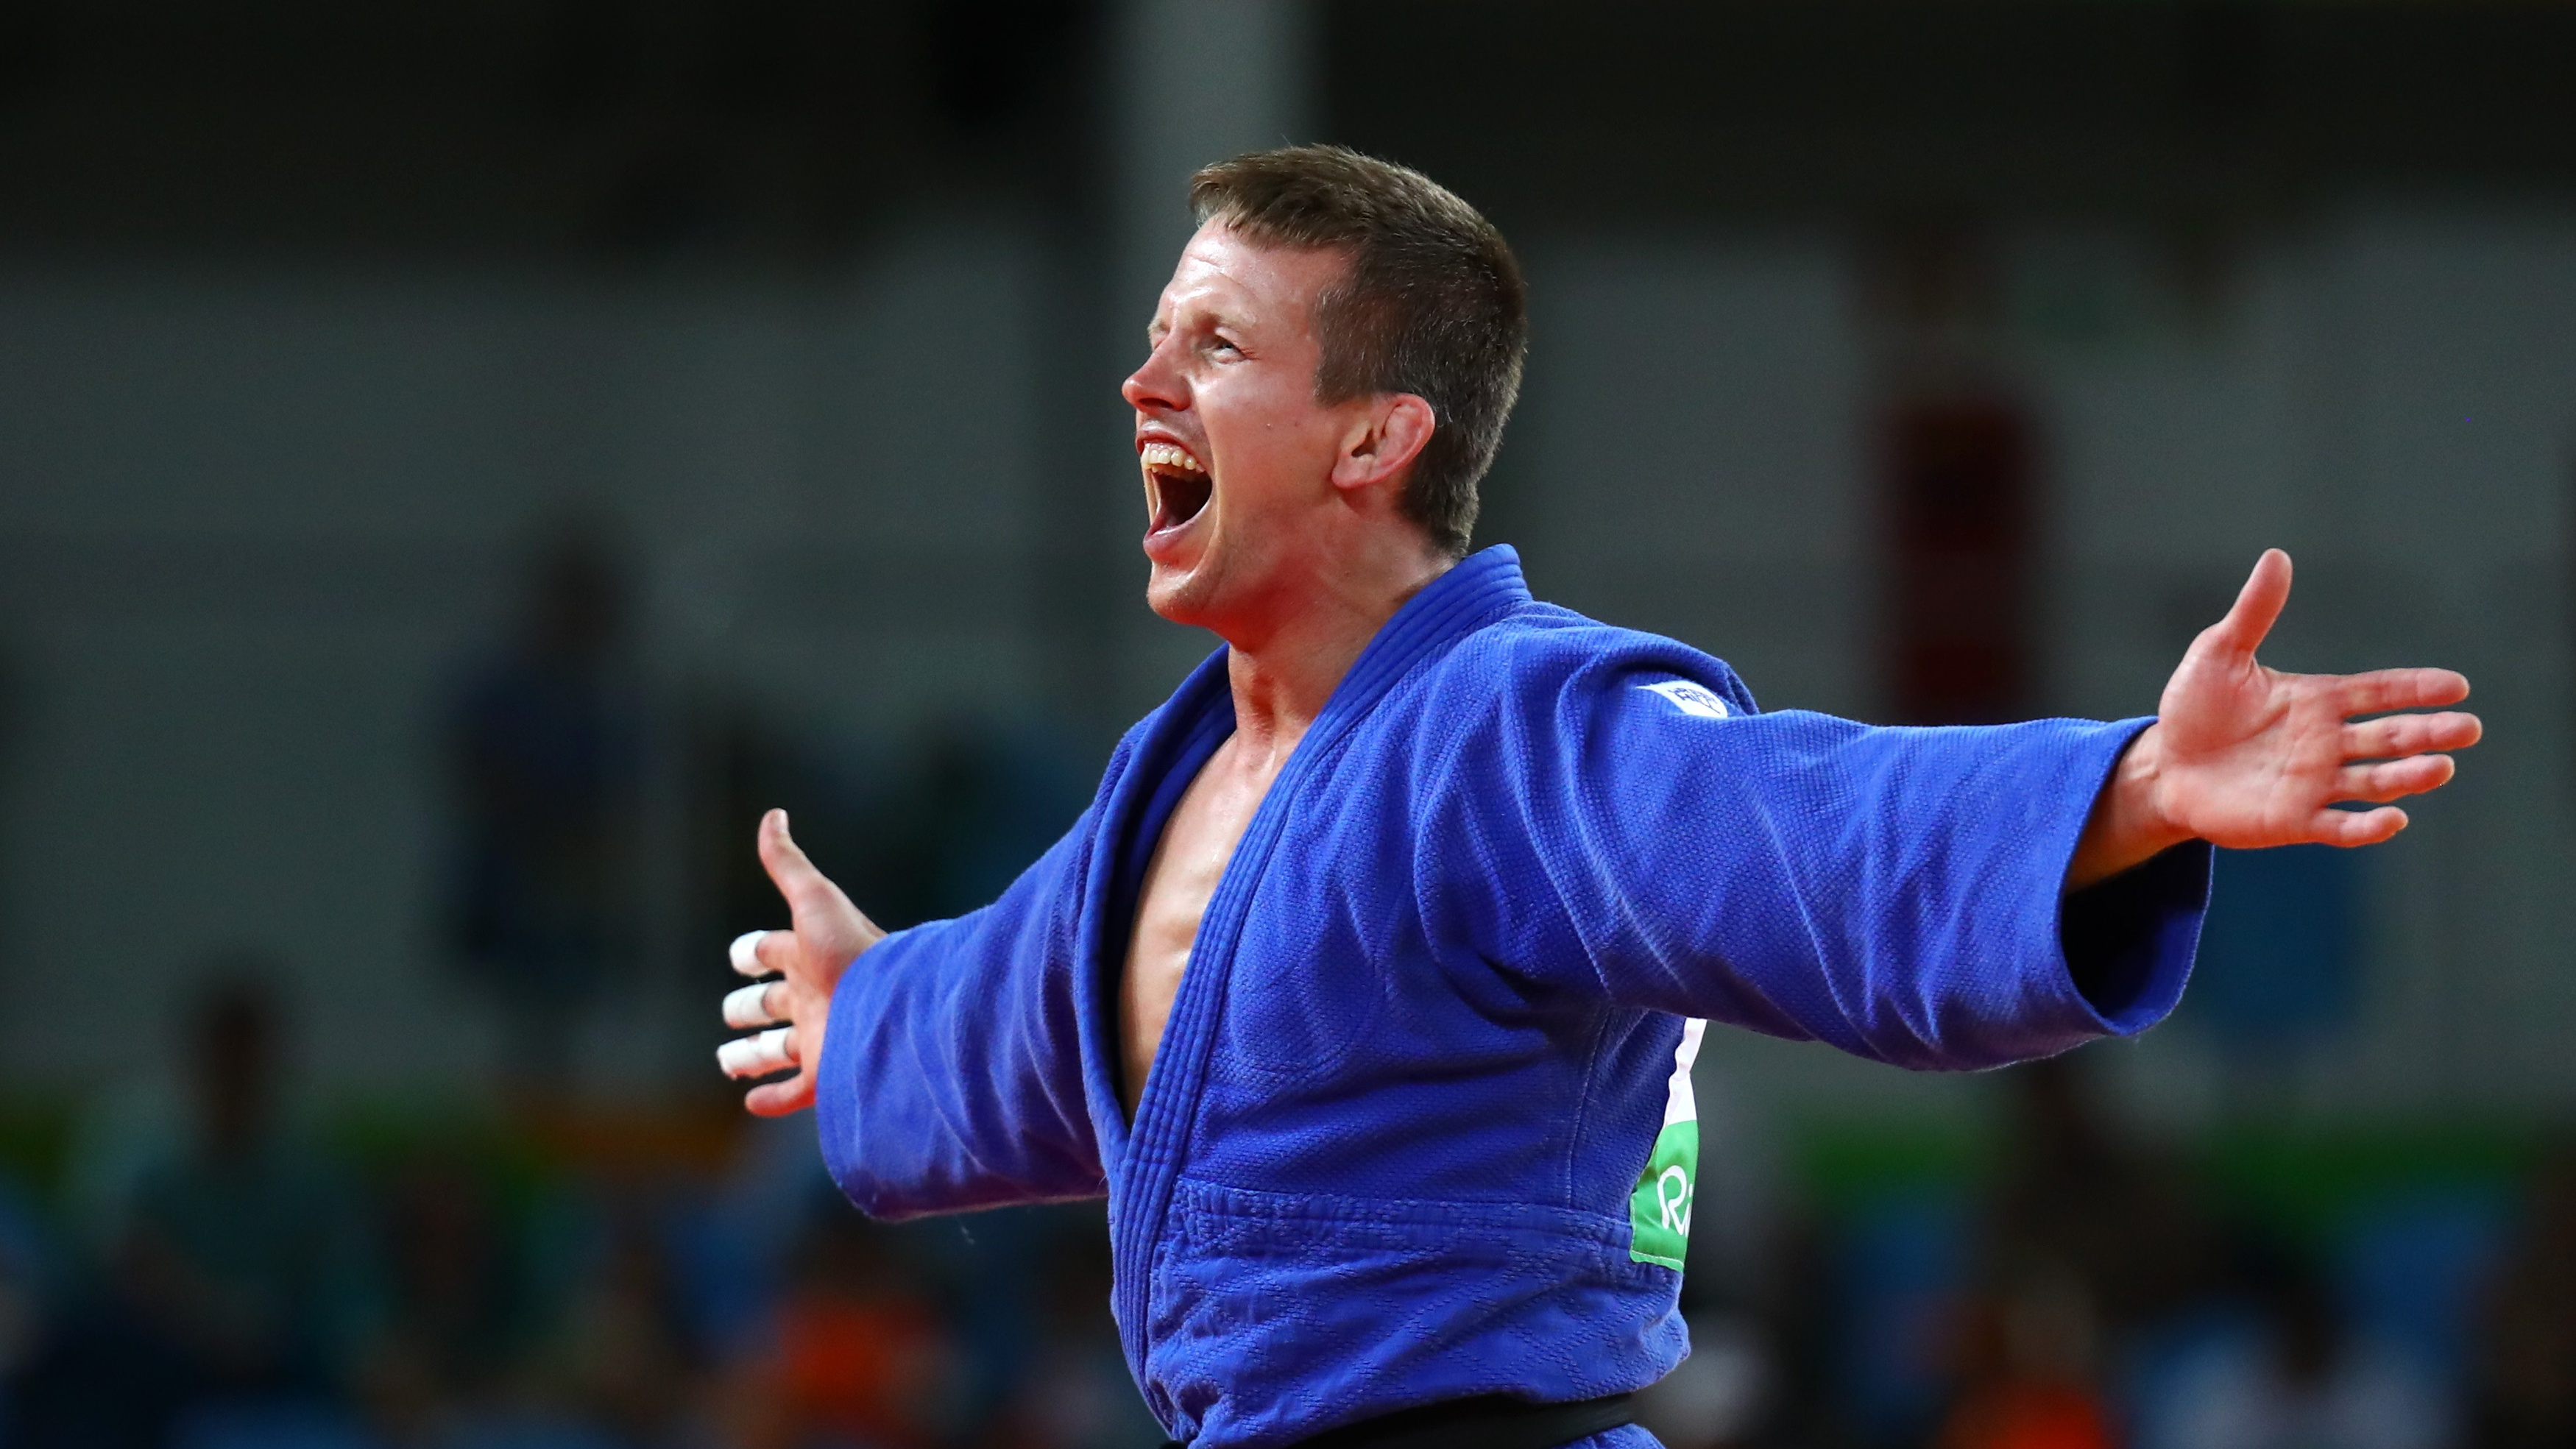 2016 Rio Olympics - Judo - Final - Men -73 kg Bronze Medal Contests - Carioca Arena 2 - Rio de Janeiro, Brazil - 08/08/2016. Dirk Van Tichelt (BEL) of Belgium celebrates. REUTERS/Kai Pfaffenbach FOR EDITORIAL USE ONLY. NOT FOR SALE FOR MARKETING OR ADVERTISING CAMPAIGNS.